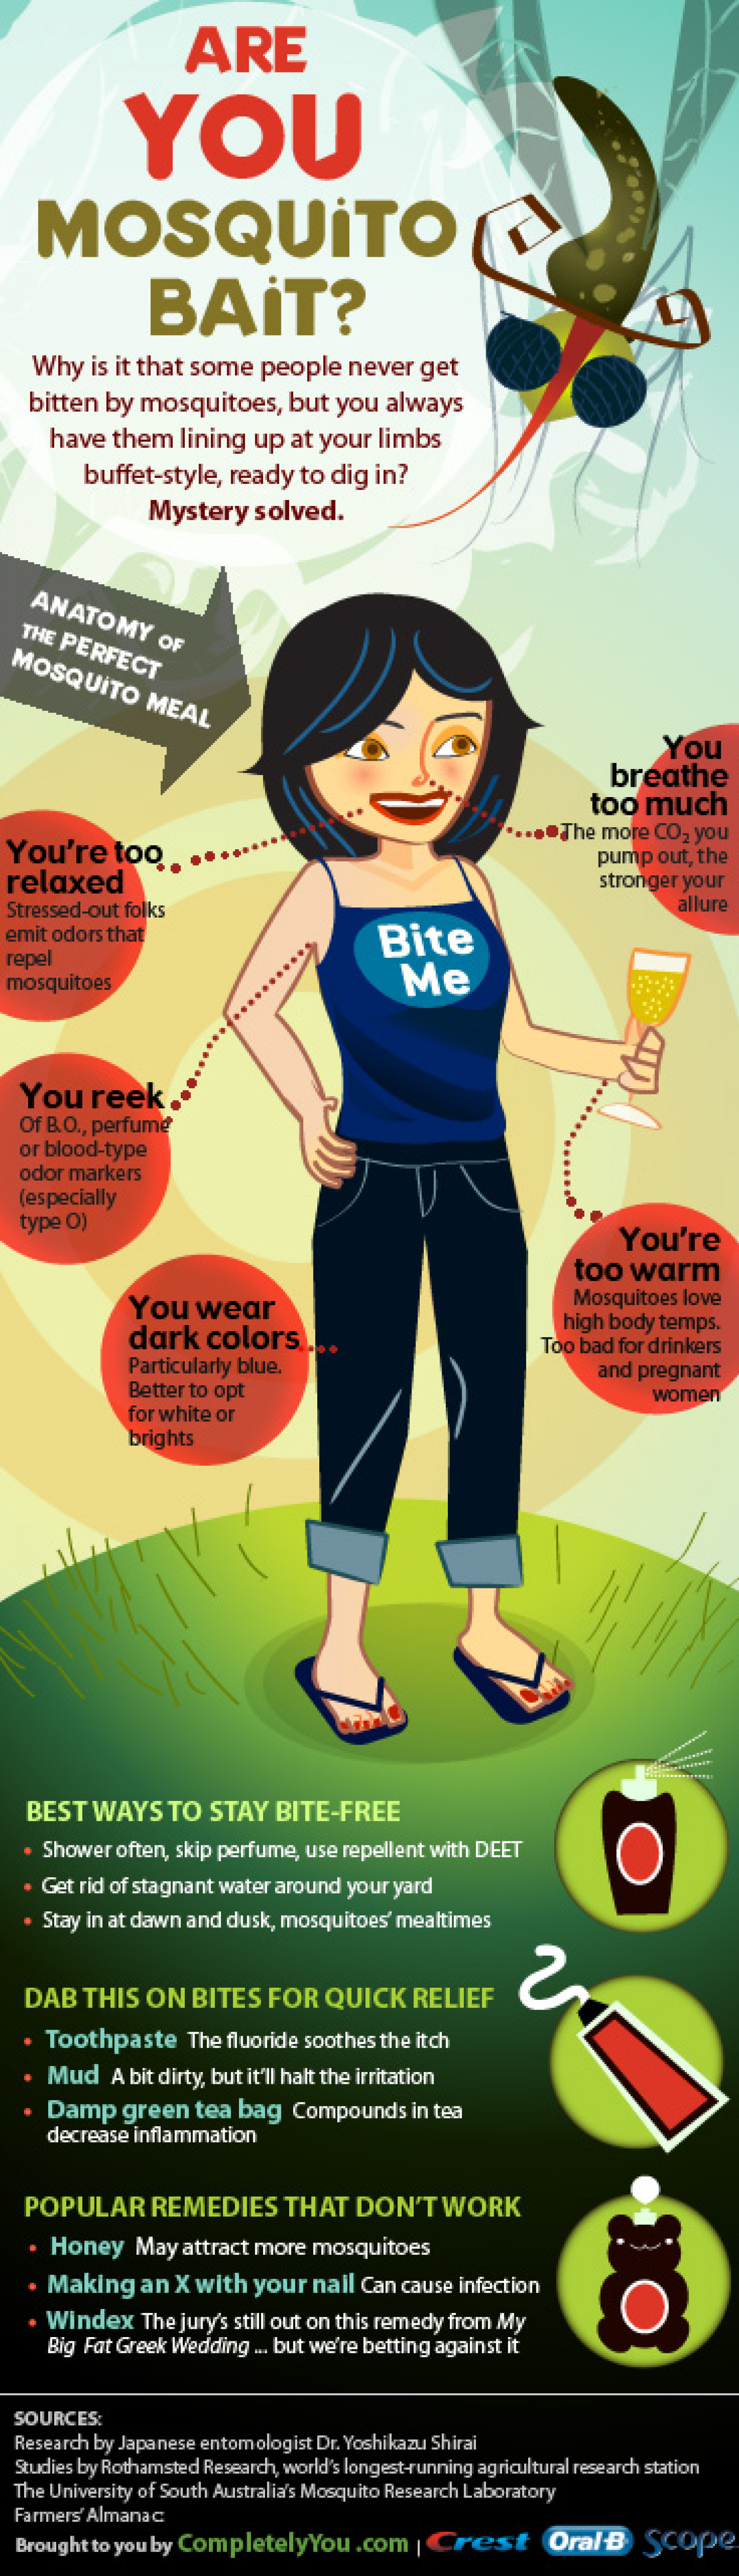 Are You Mosquito Bait? Infographic